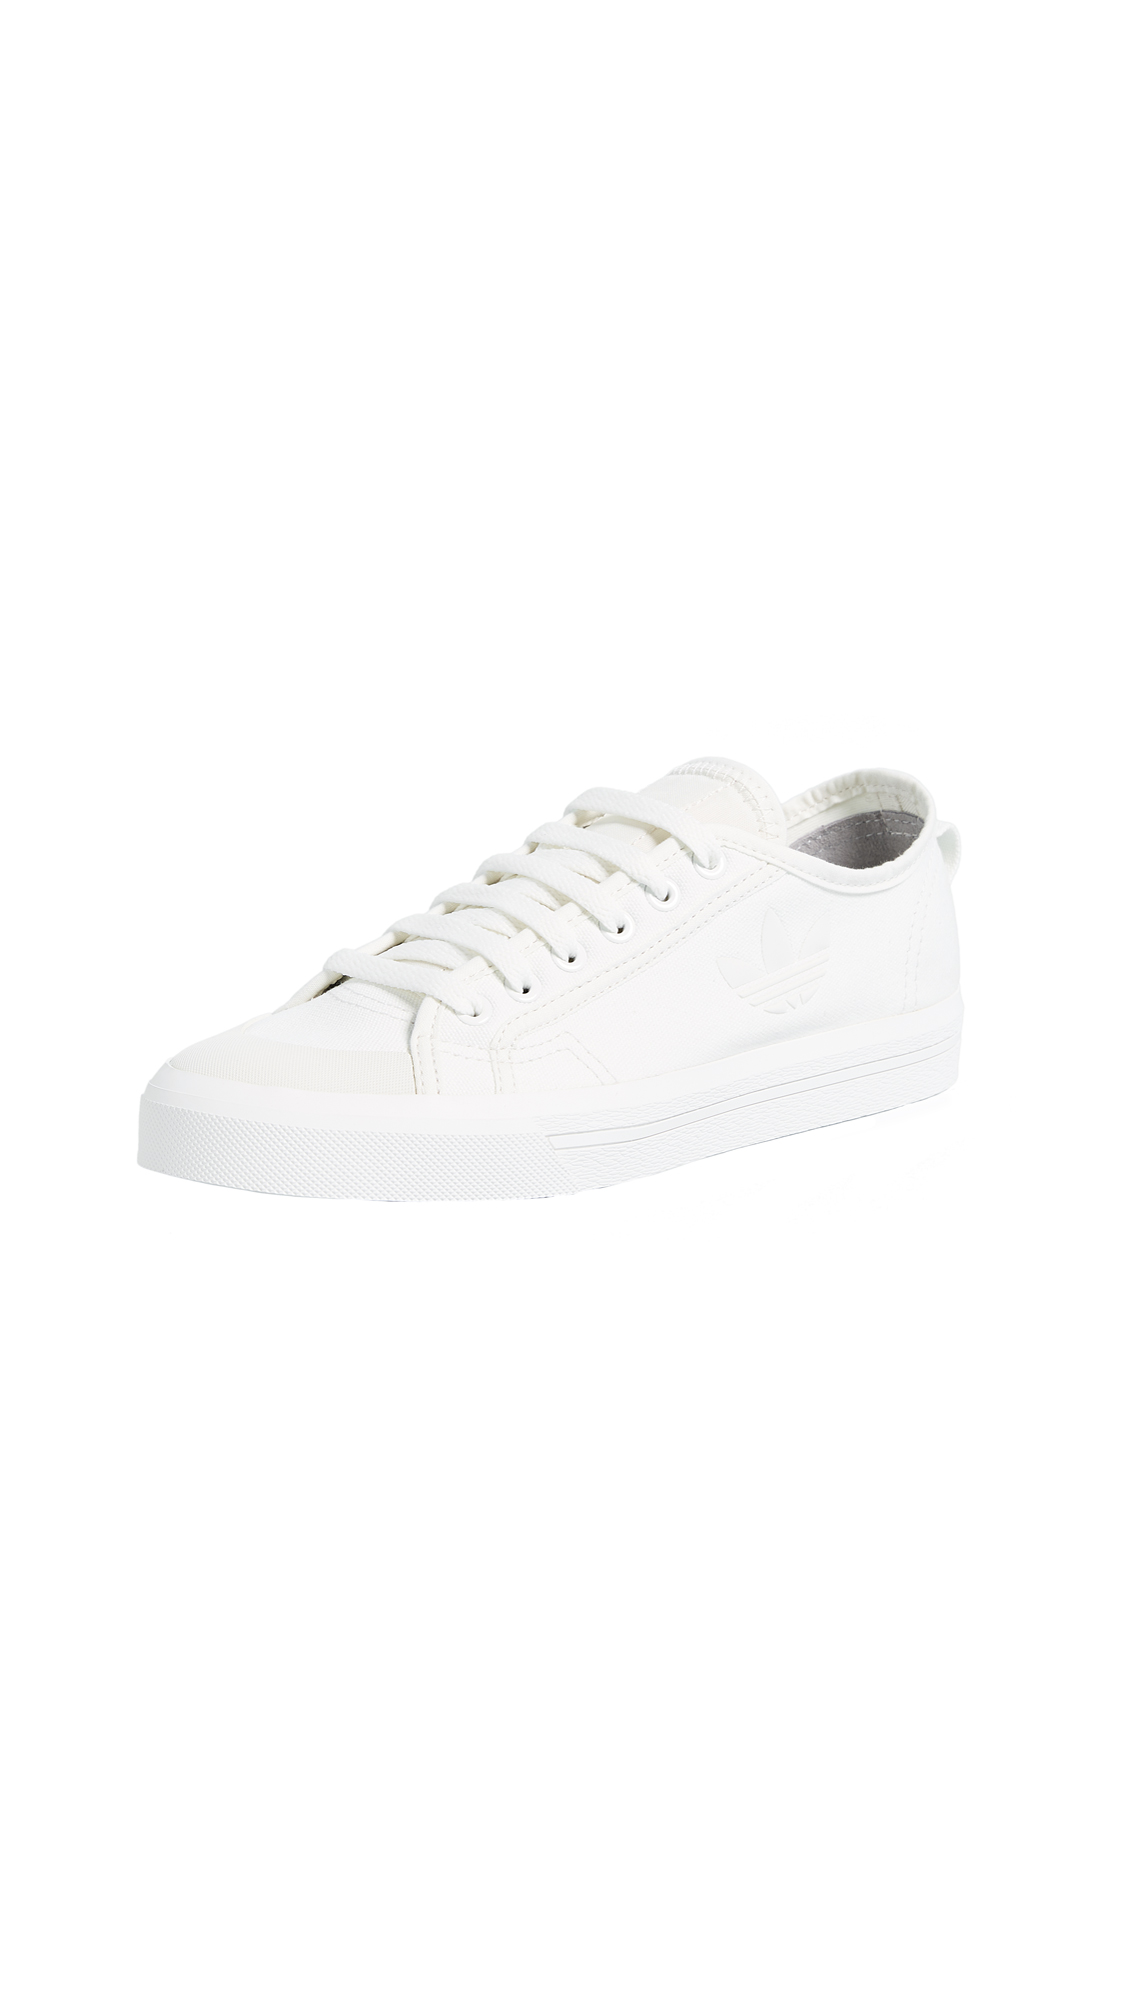 Adidas Raf Simons Stan Smith Spirit Low Sneakers - Optic White/Optic White